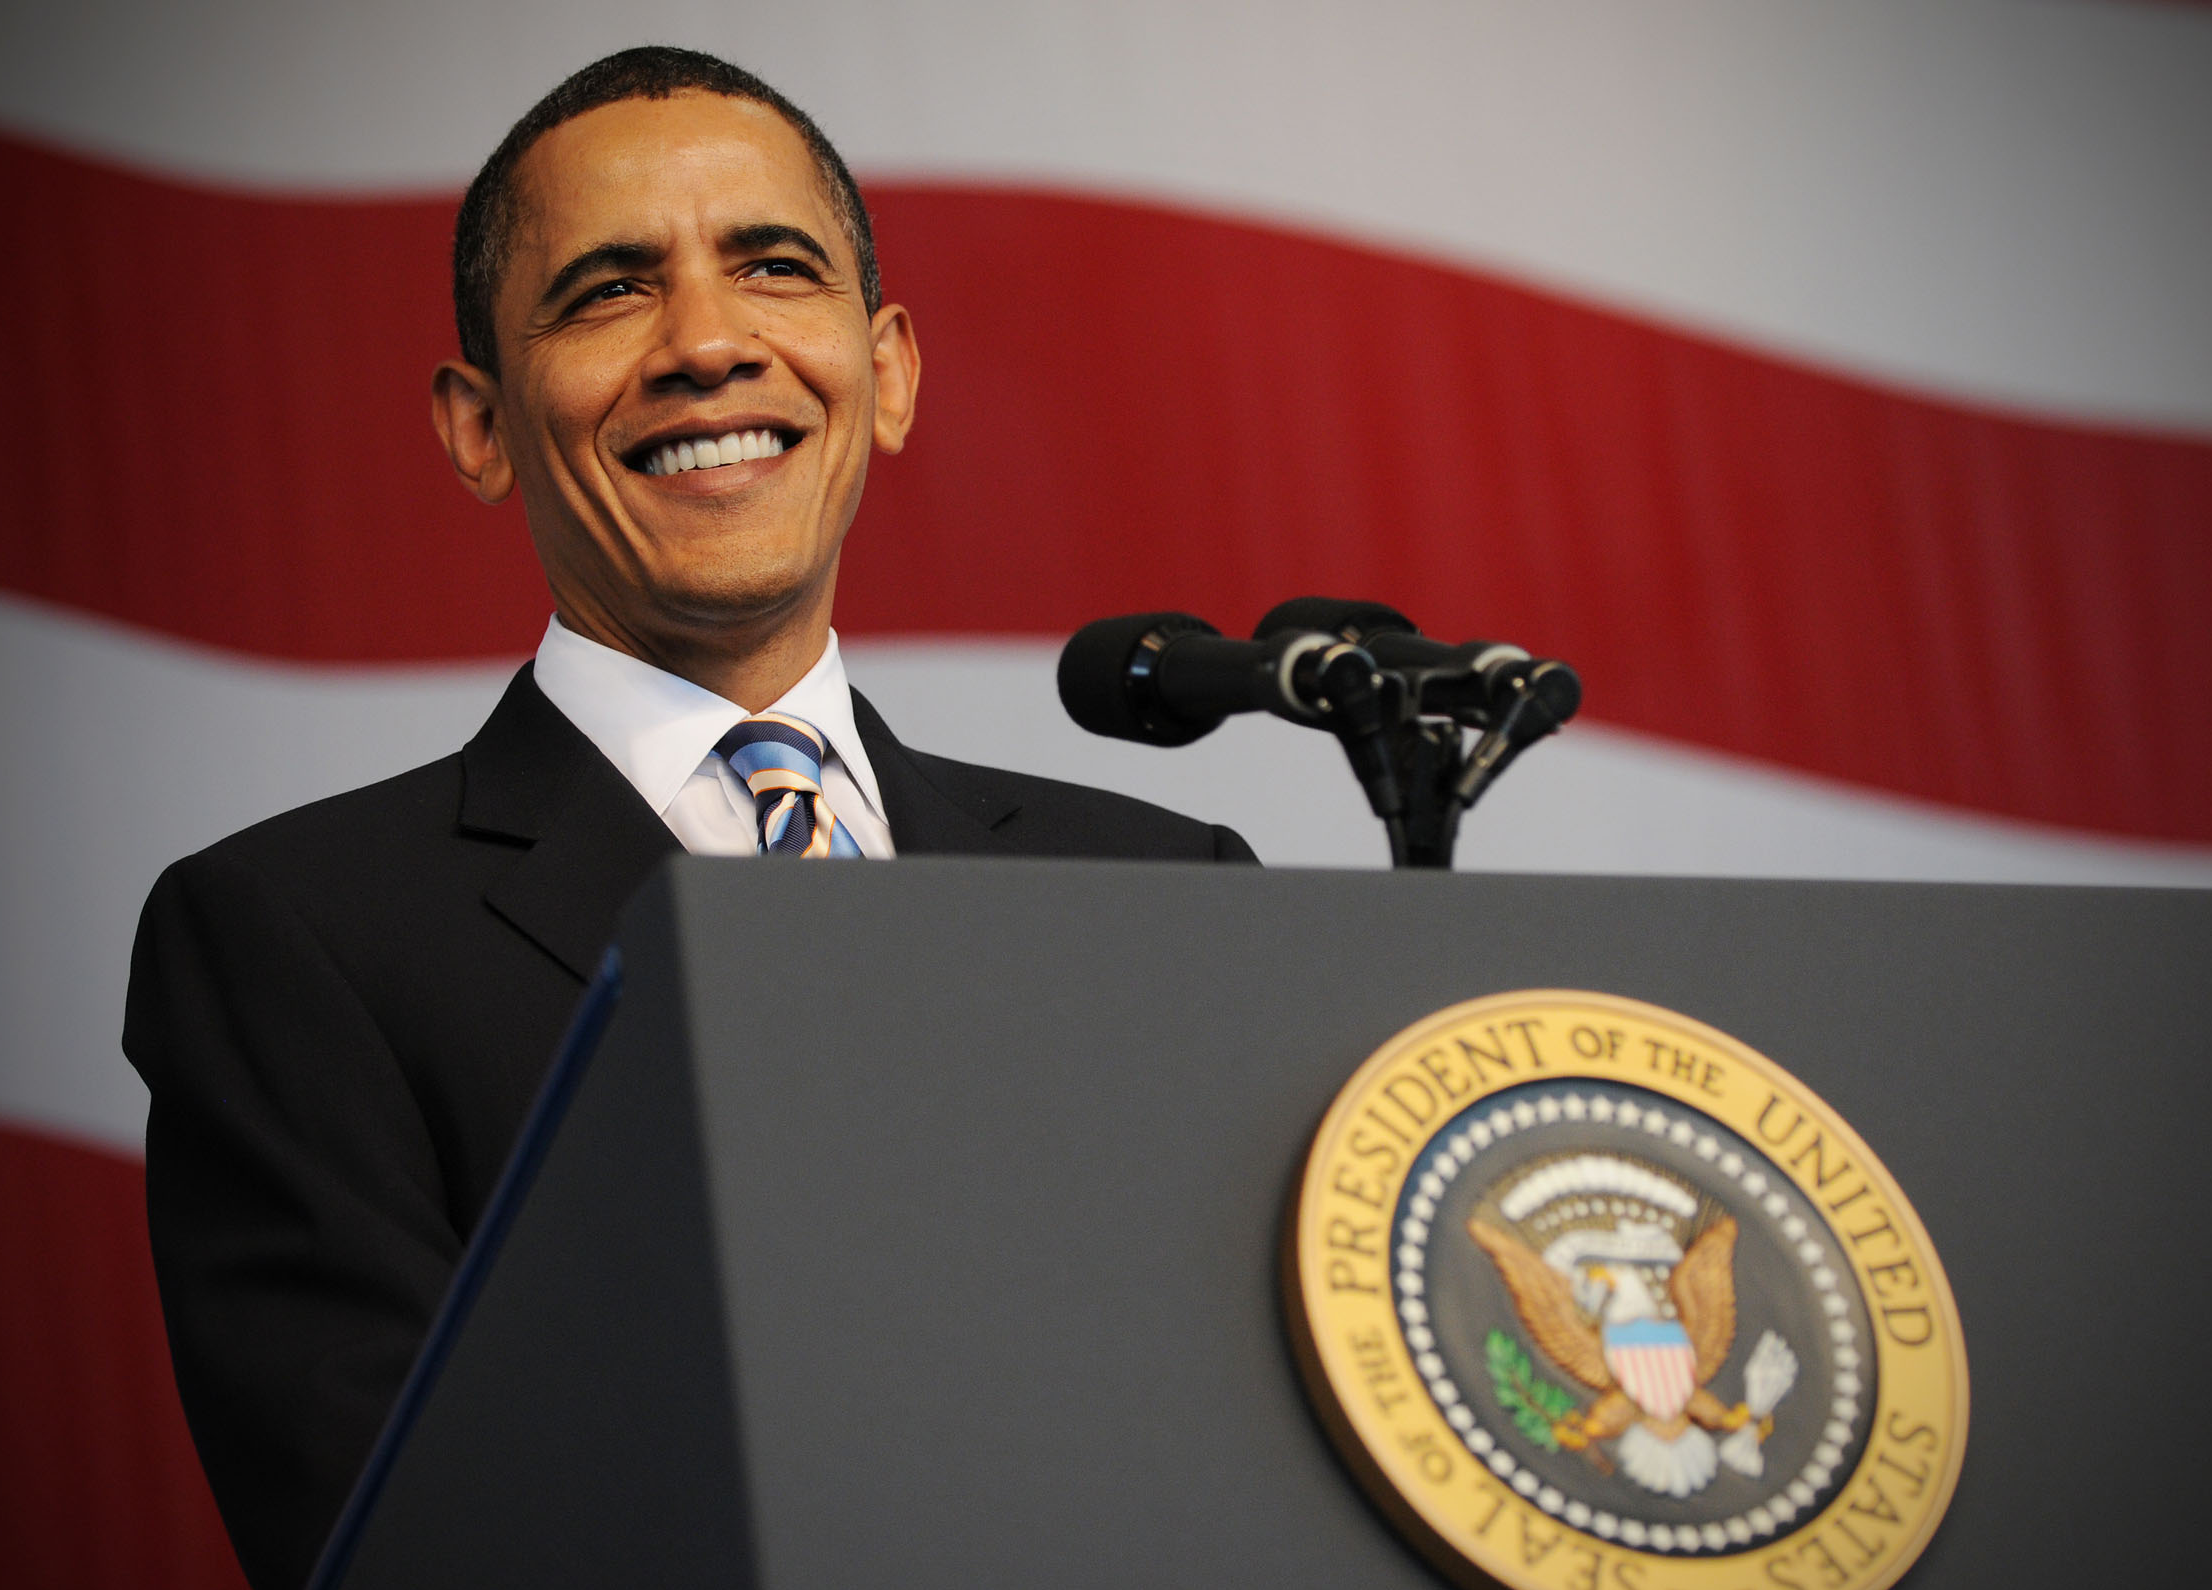 first black president obama essay November 4, 2008 was an historic day for americans, as they celebrated the election of barack obama as the 44th presidentthe election was the longest presidential campaign and the most expensive in history (green & roberts, 2012.